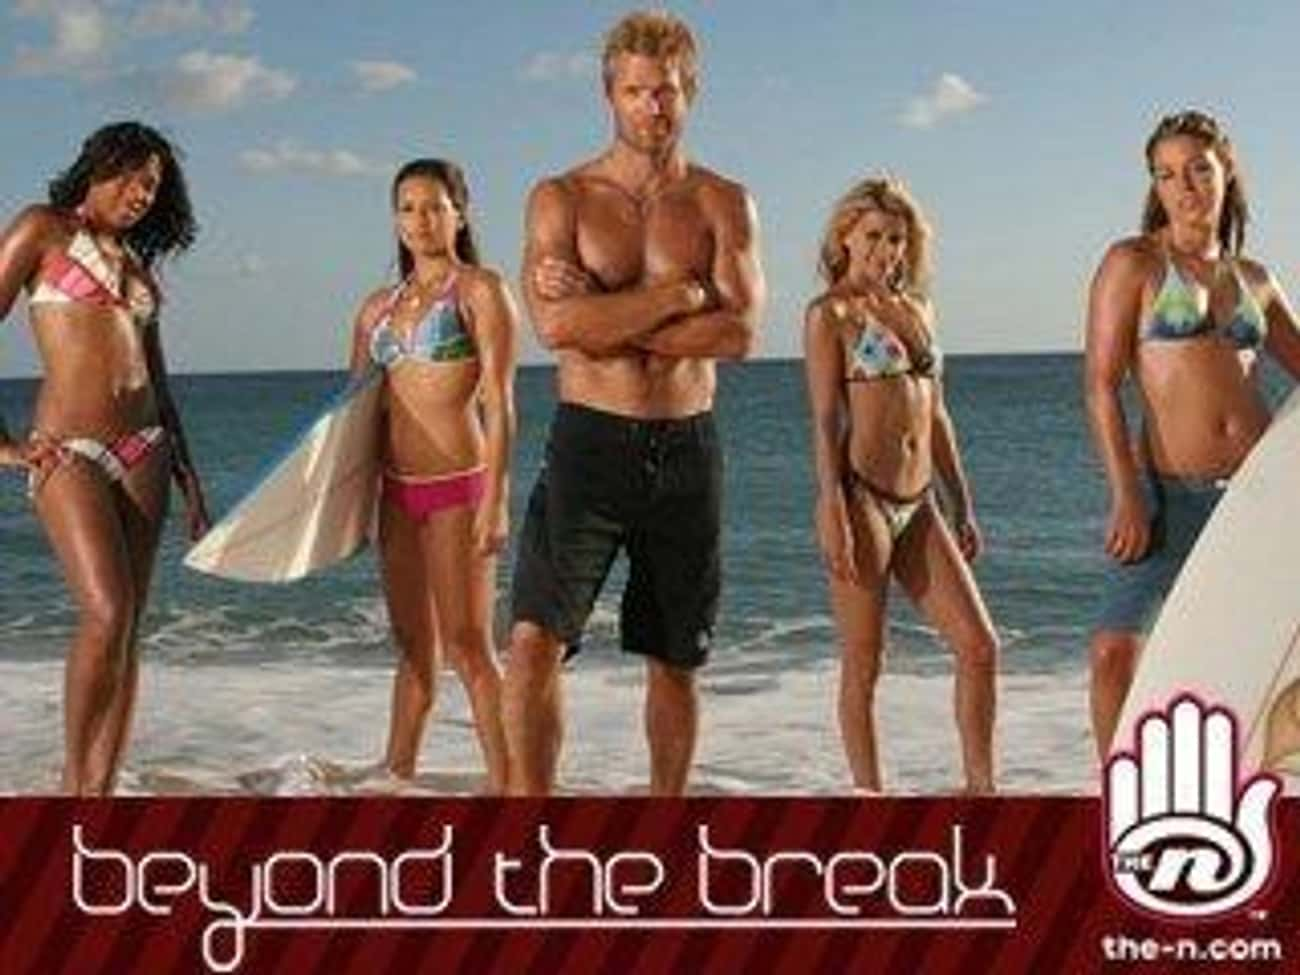 Beyond the Break is listed (or ranked) 3 on the list 12 TeenNick Shows You Totally Forgot About But Definitely Loved